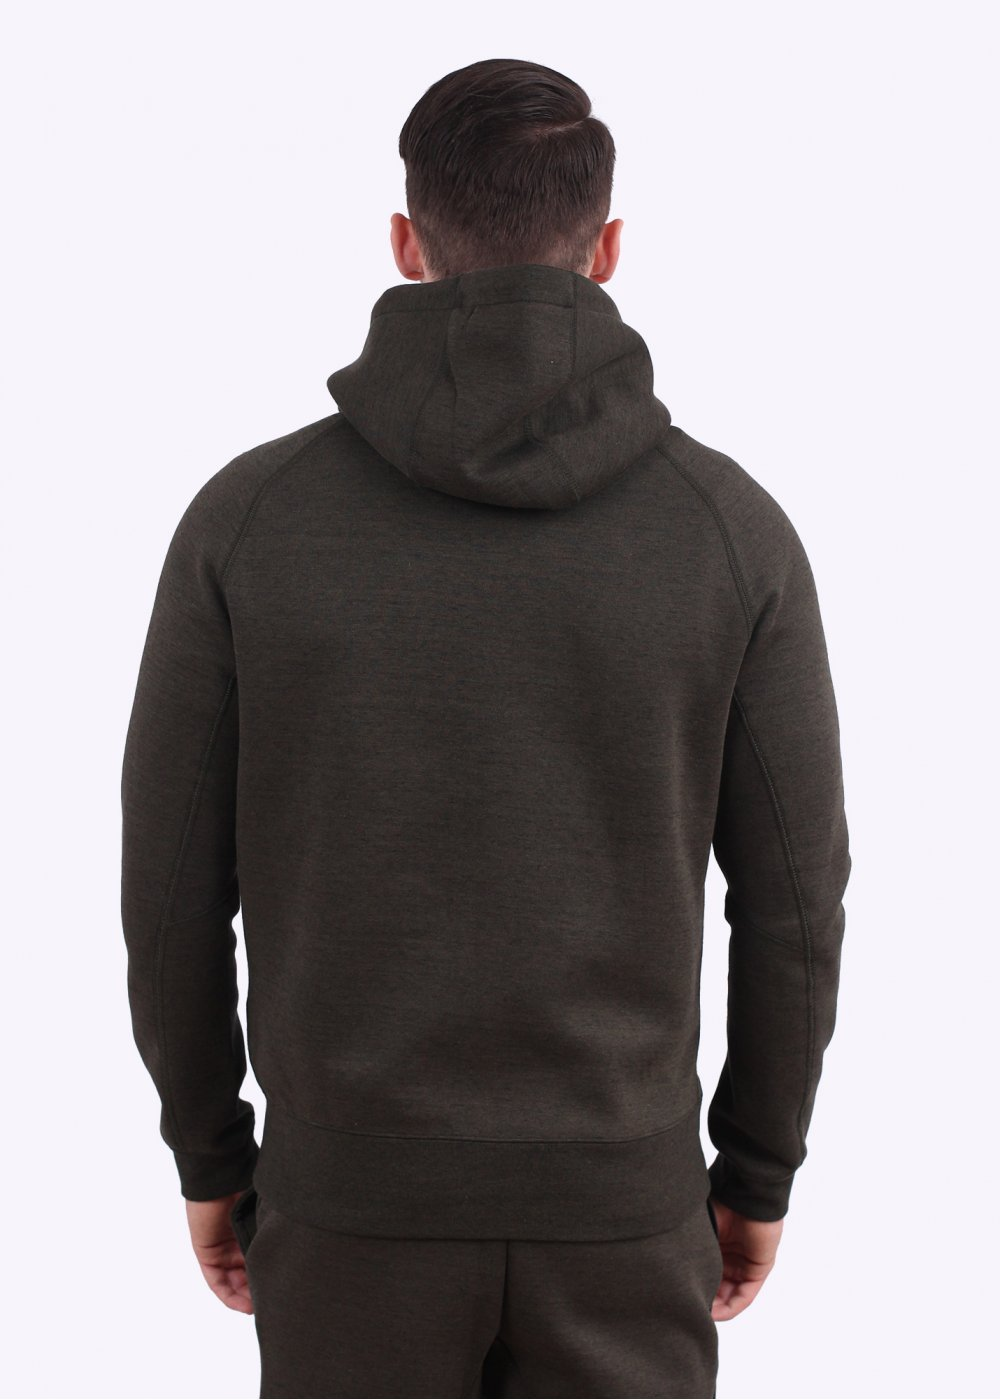 nike tech fleece aw77 hoody dark green. Black Bedroom Furniture Sets. Home Design Ideas